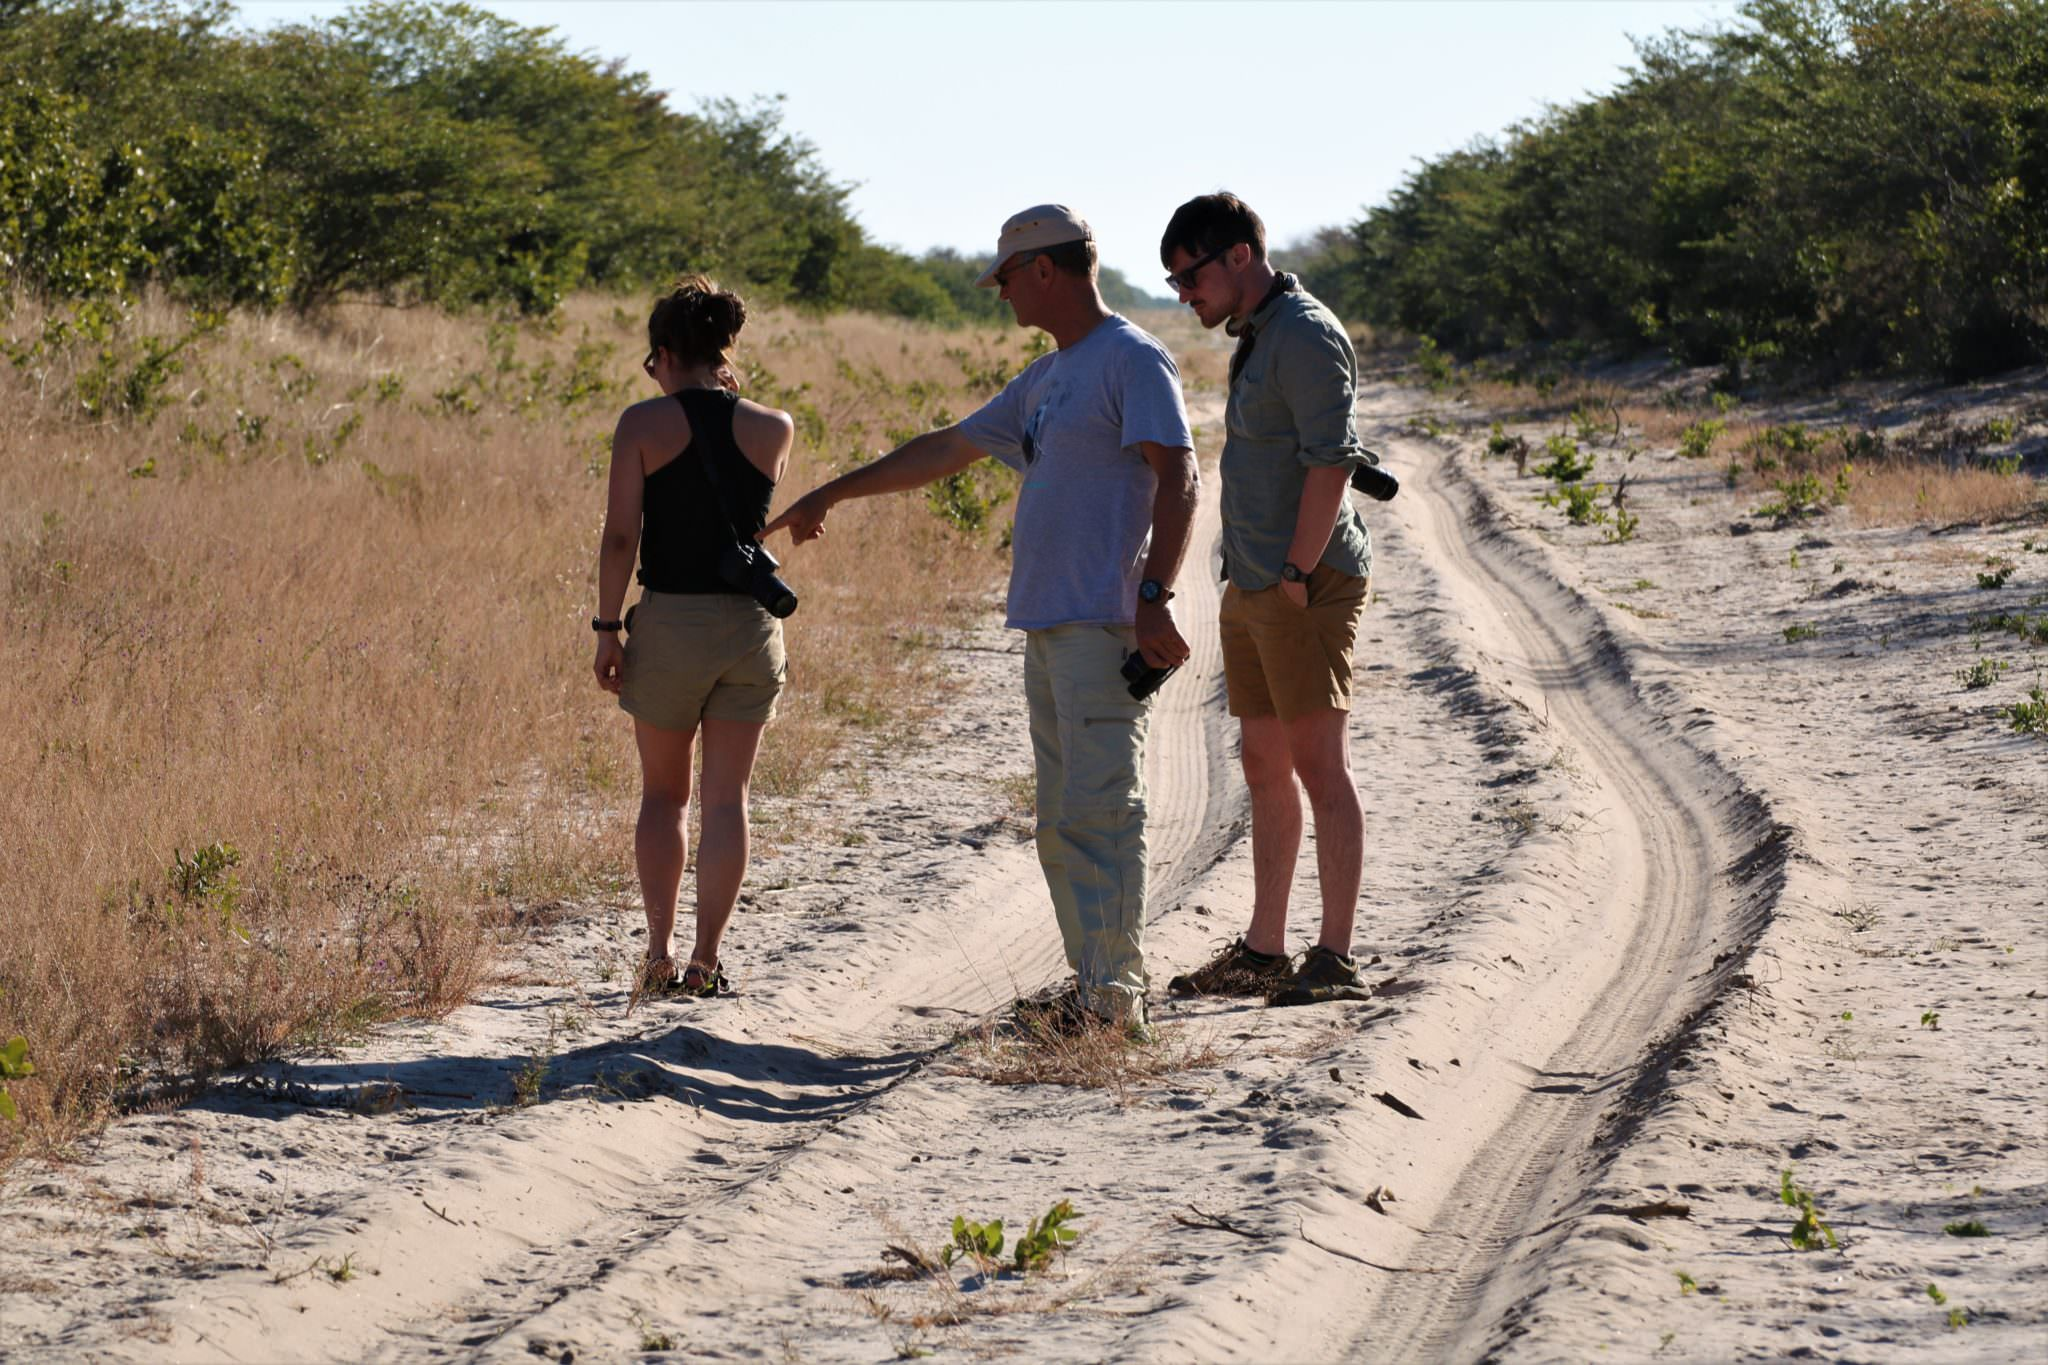 Conservation volunteers standing on a dirt track identifying tracks conducting a spoor survey